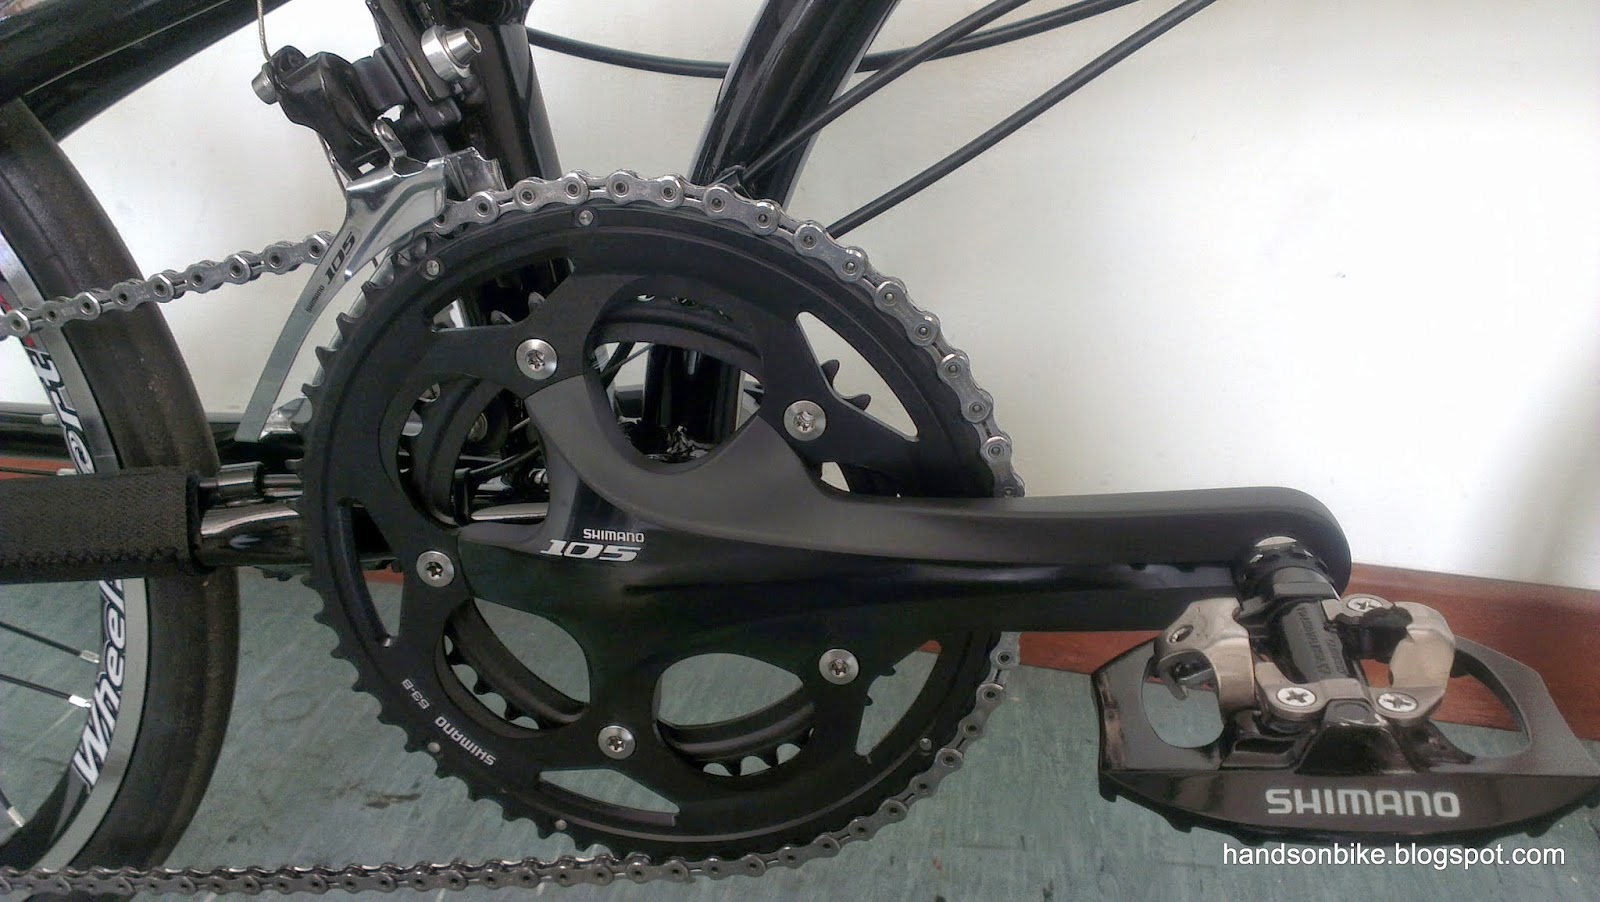 Hands On Bike How To Build An Affordable High Performance Fd Shimano Triagra 4700 Braze No Nonsense 105 Crankset With And Pd A530 Spd Platform Pedals